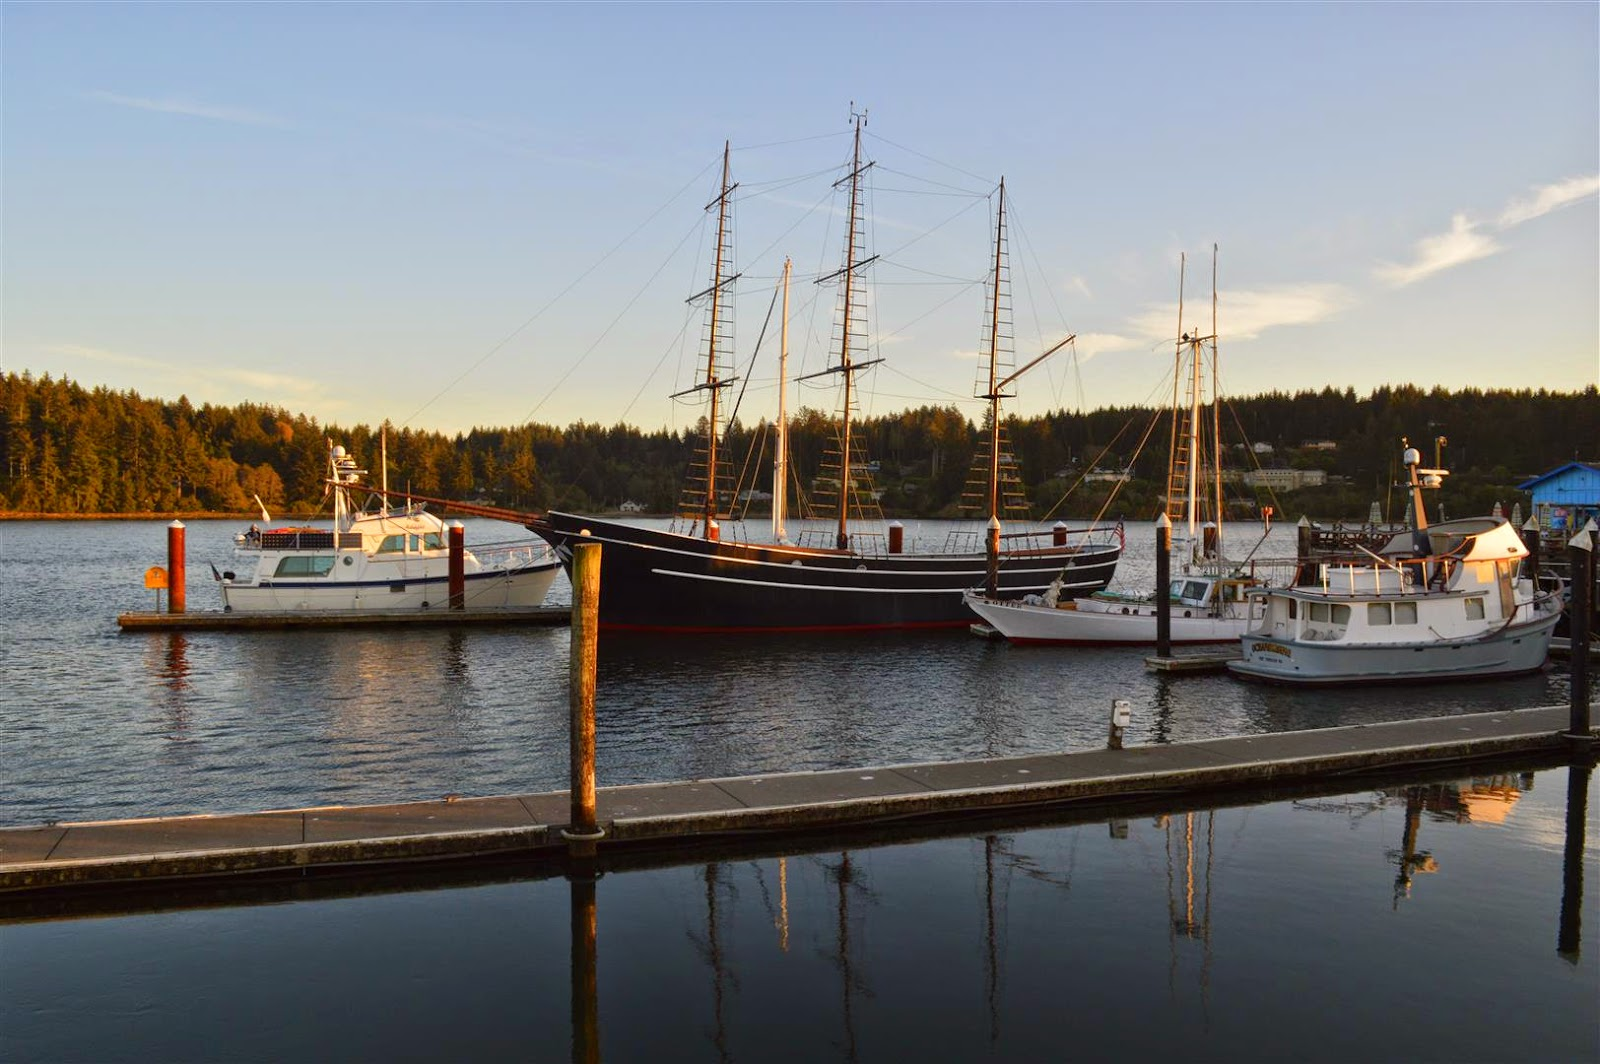 Adagio Tied Up At The Transient Moorage Dock, Florence Or